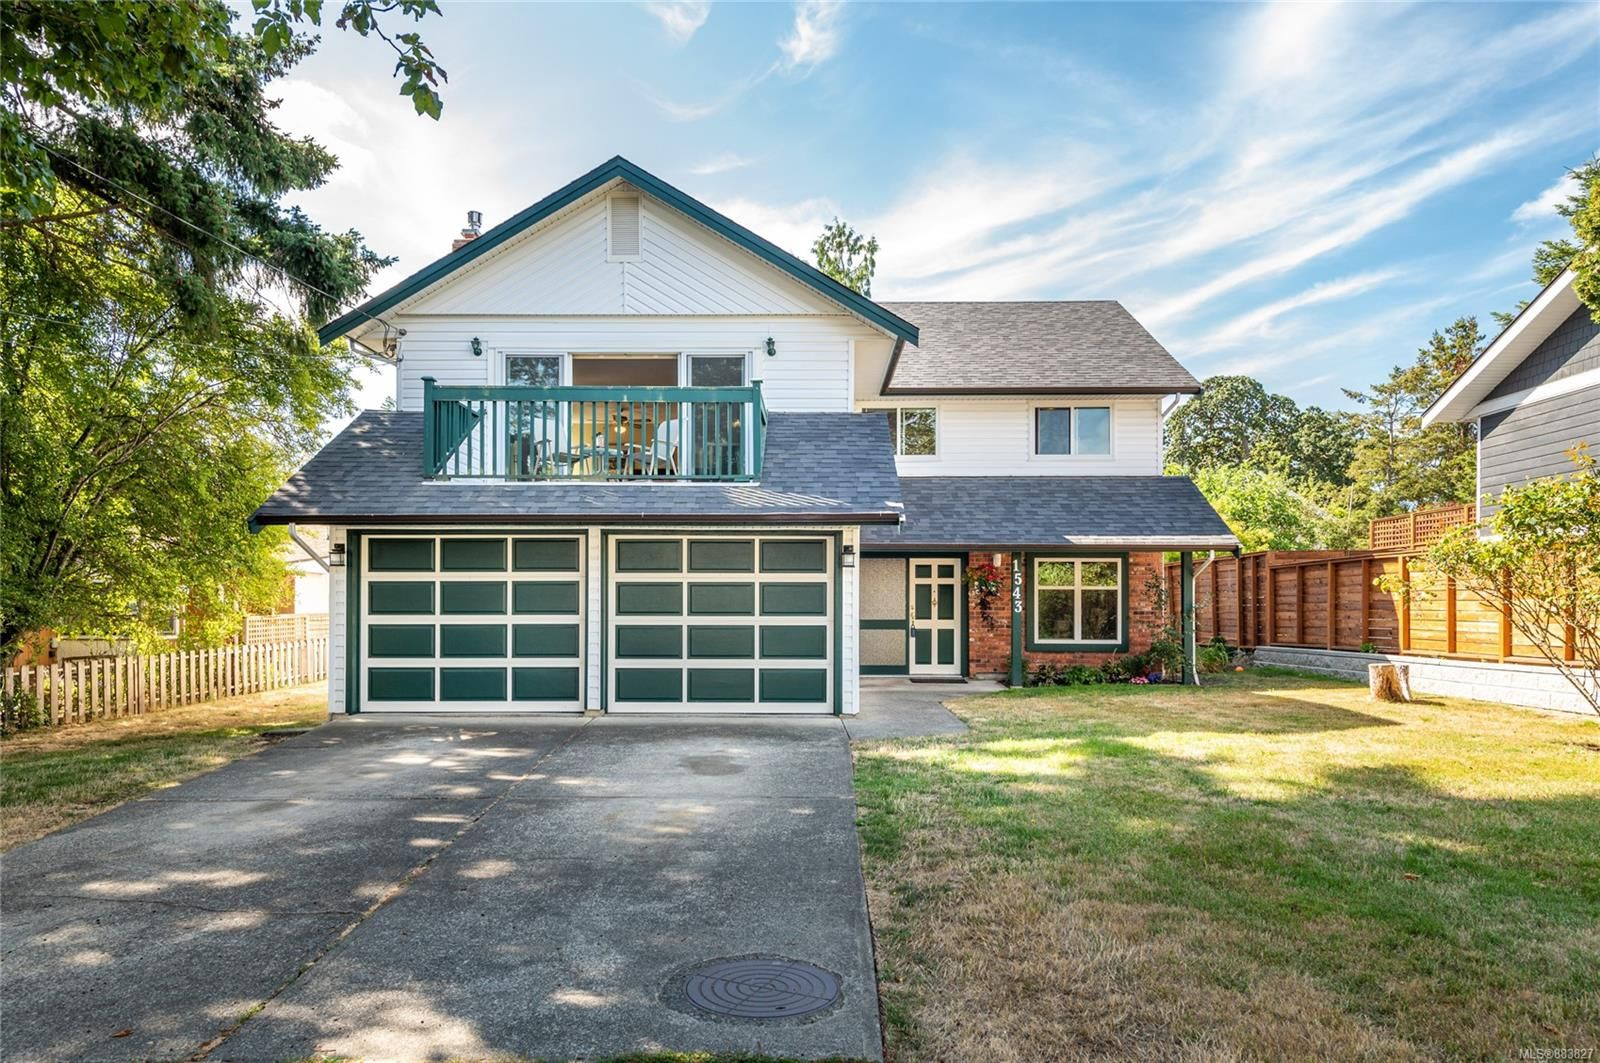 Main Photo: 1543 Morley St in : Vi Oaklands House for sale (Victoria)  : MLS®# 883827